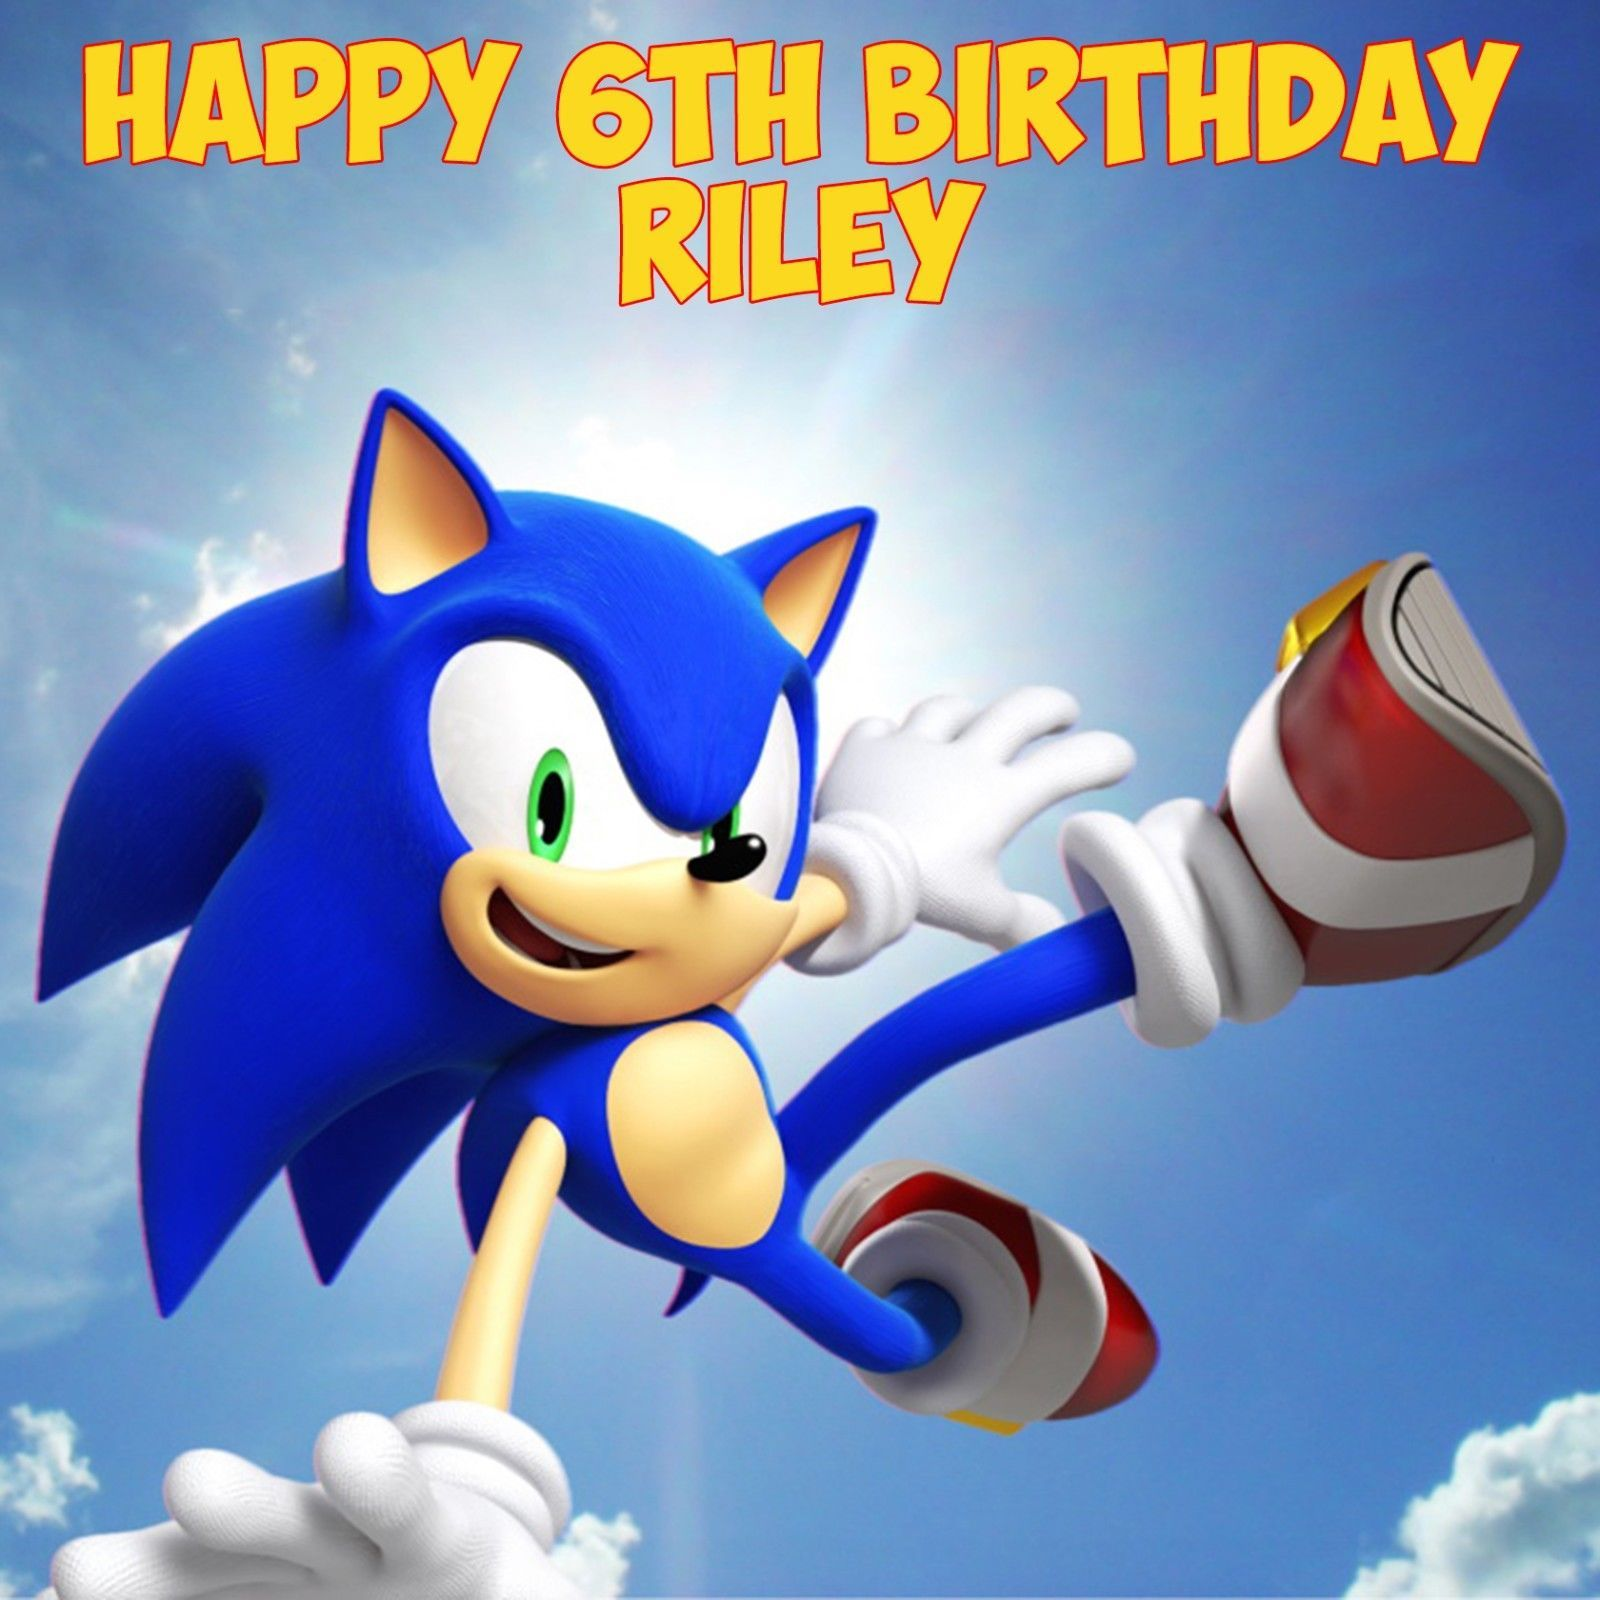 Astounding Sonic The Hedgehog Personalised Edible Square Birthday Cake Topper Funny Birthday Cards Online Bapapcheapnameinfo